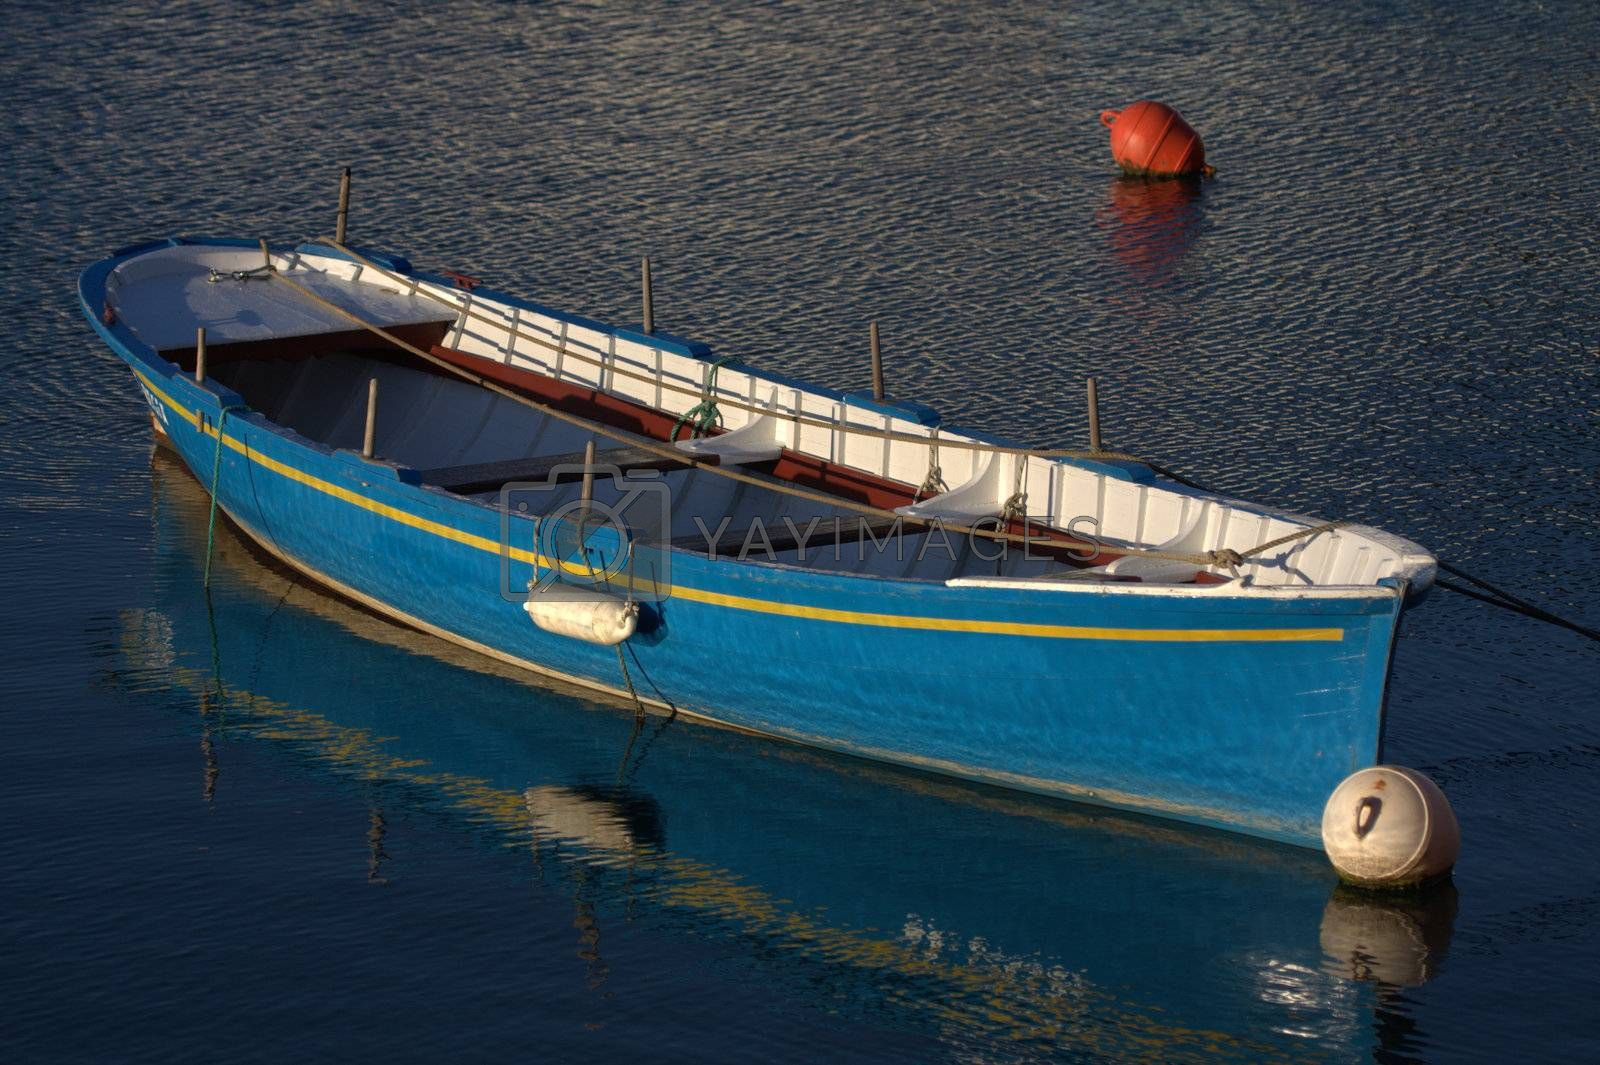 Royalty free image of a blue boat moored in the port by allg